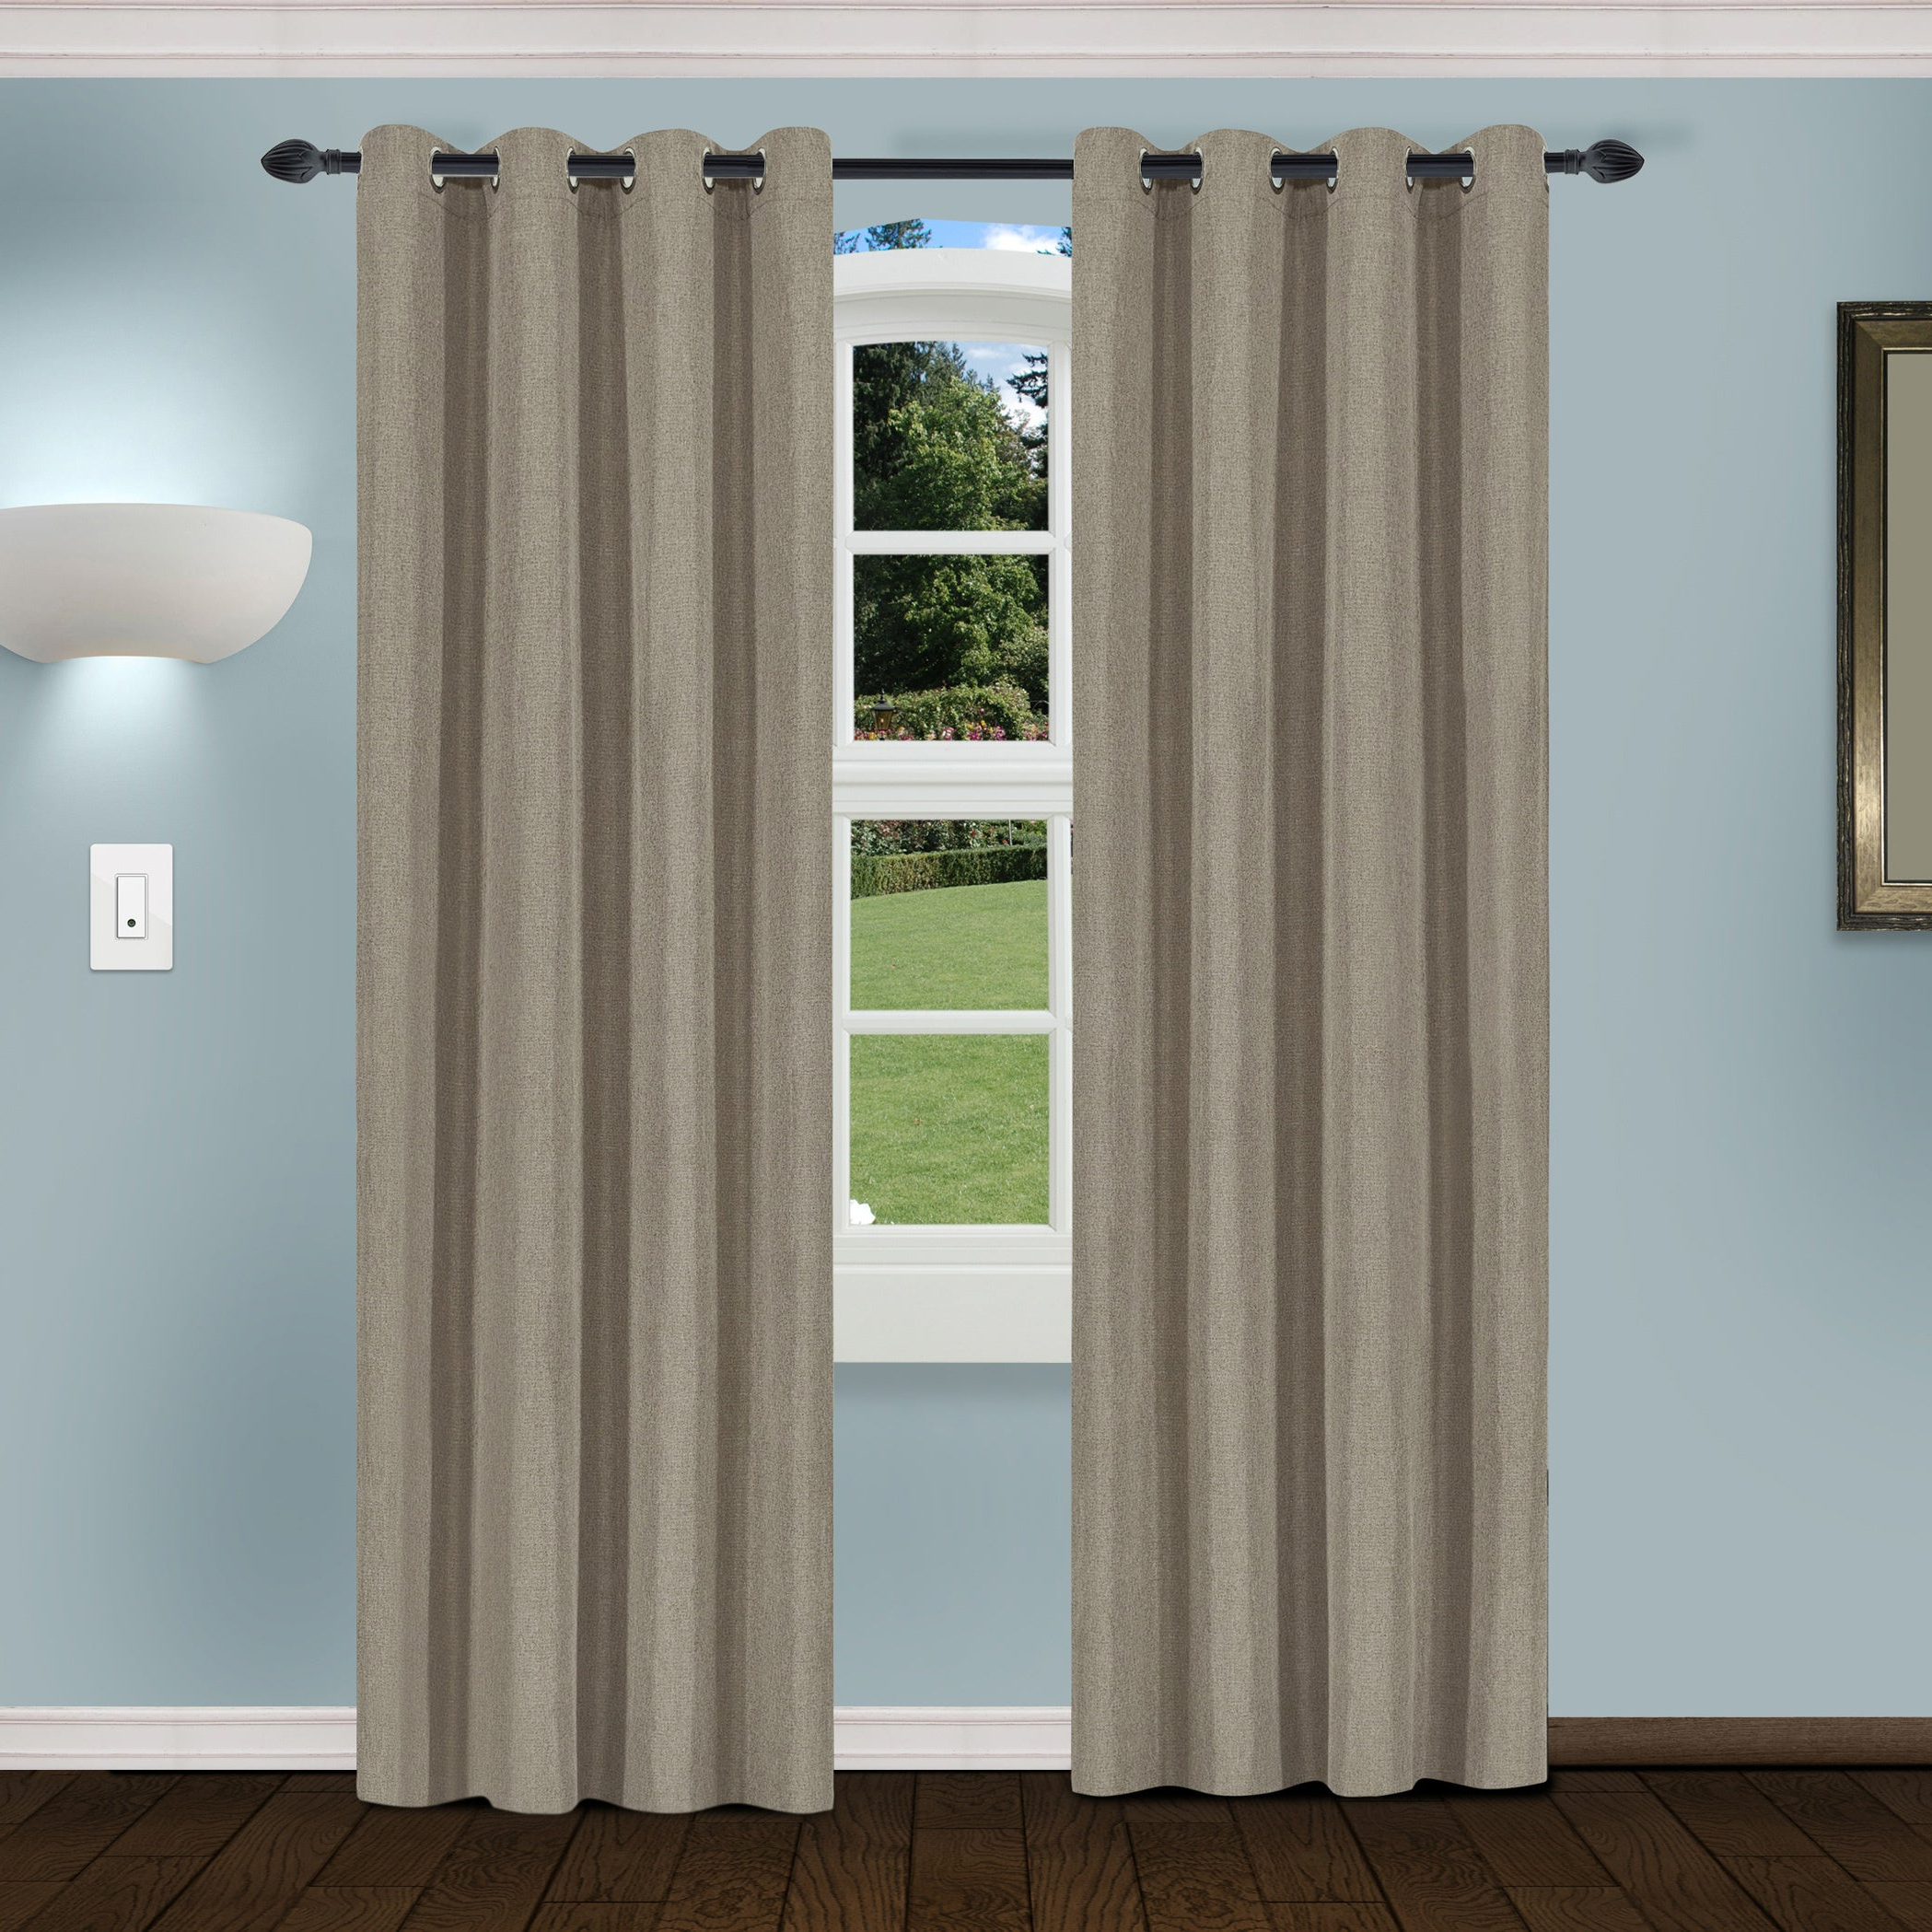 2020 Superior Solid Insulated Thermal Blackout Grommet Curtain Panel Pairs With Regard To Superior Linen Insulated Thermal Blackout Grommet Curtain Panel Pair (View 11 of 20)